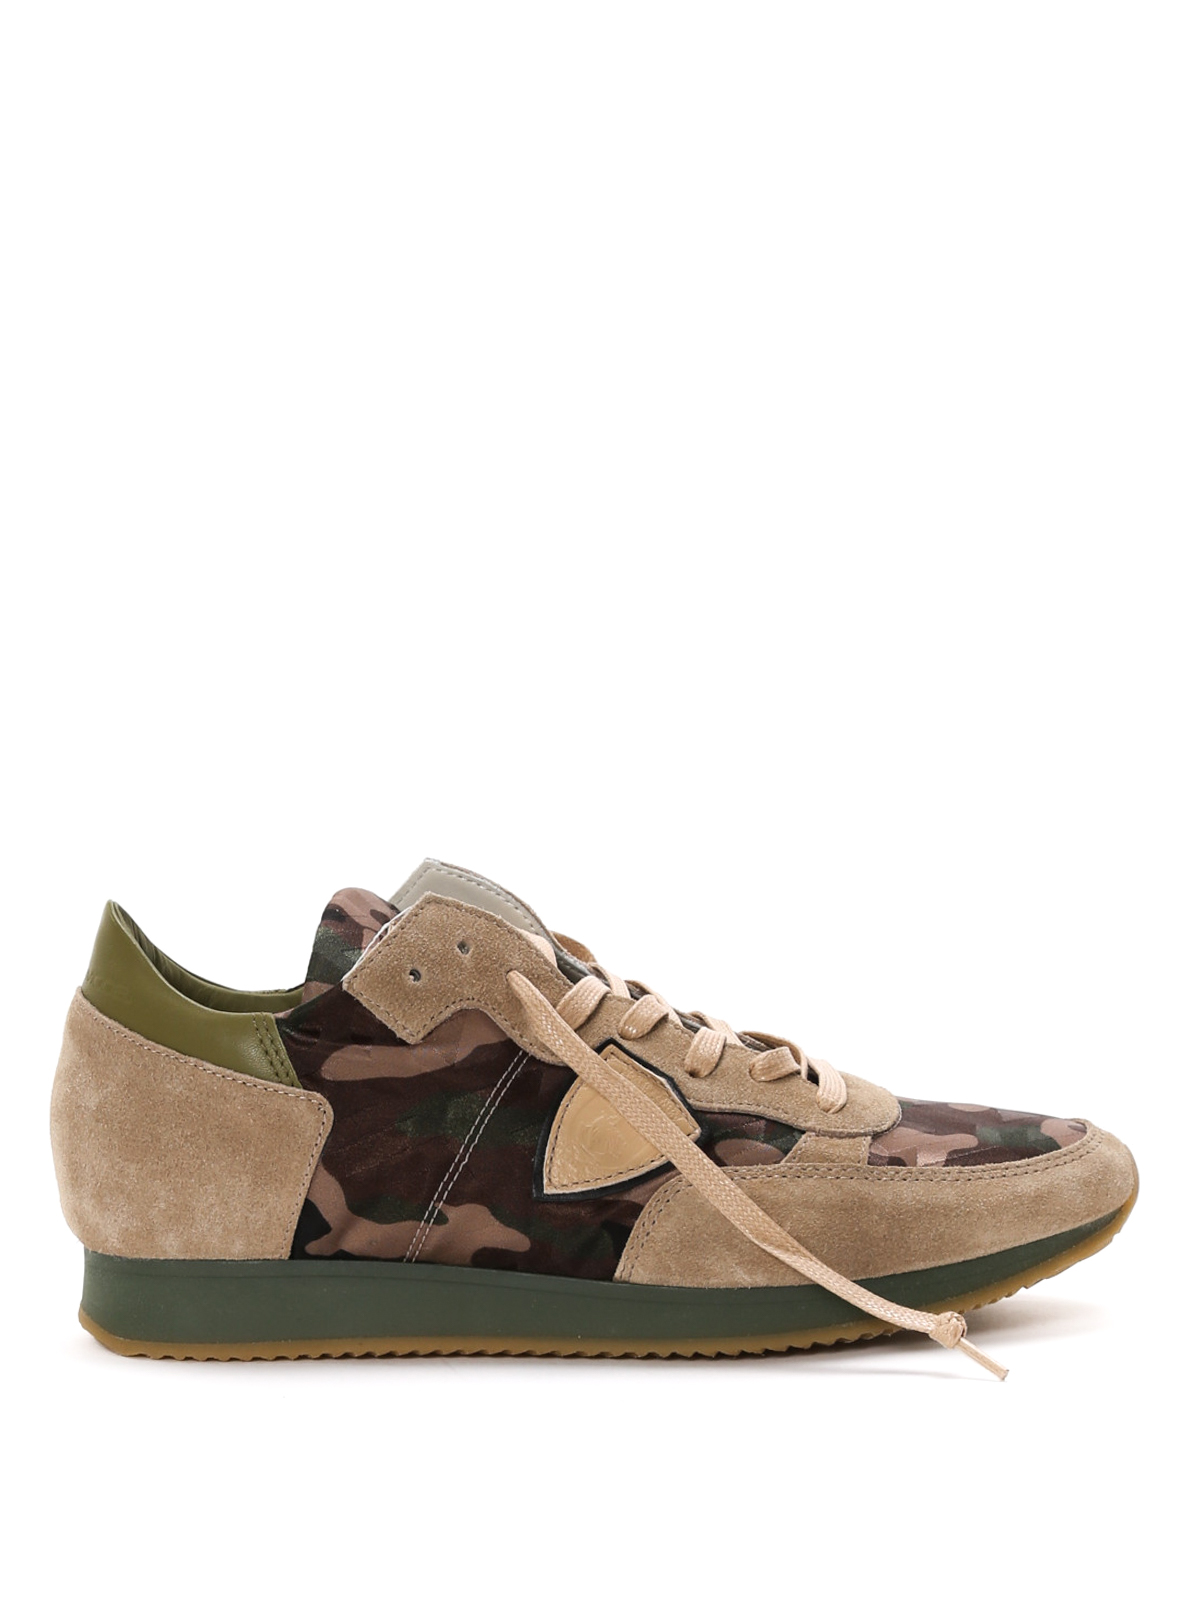 tropez mid top camouflage sneakers by philippe model trainers ikrix. Black Bedroom Furniture Sets. Home Design Ideas